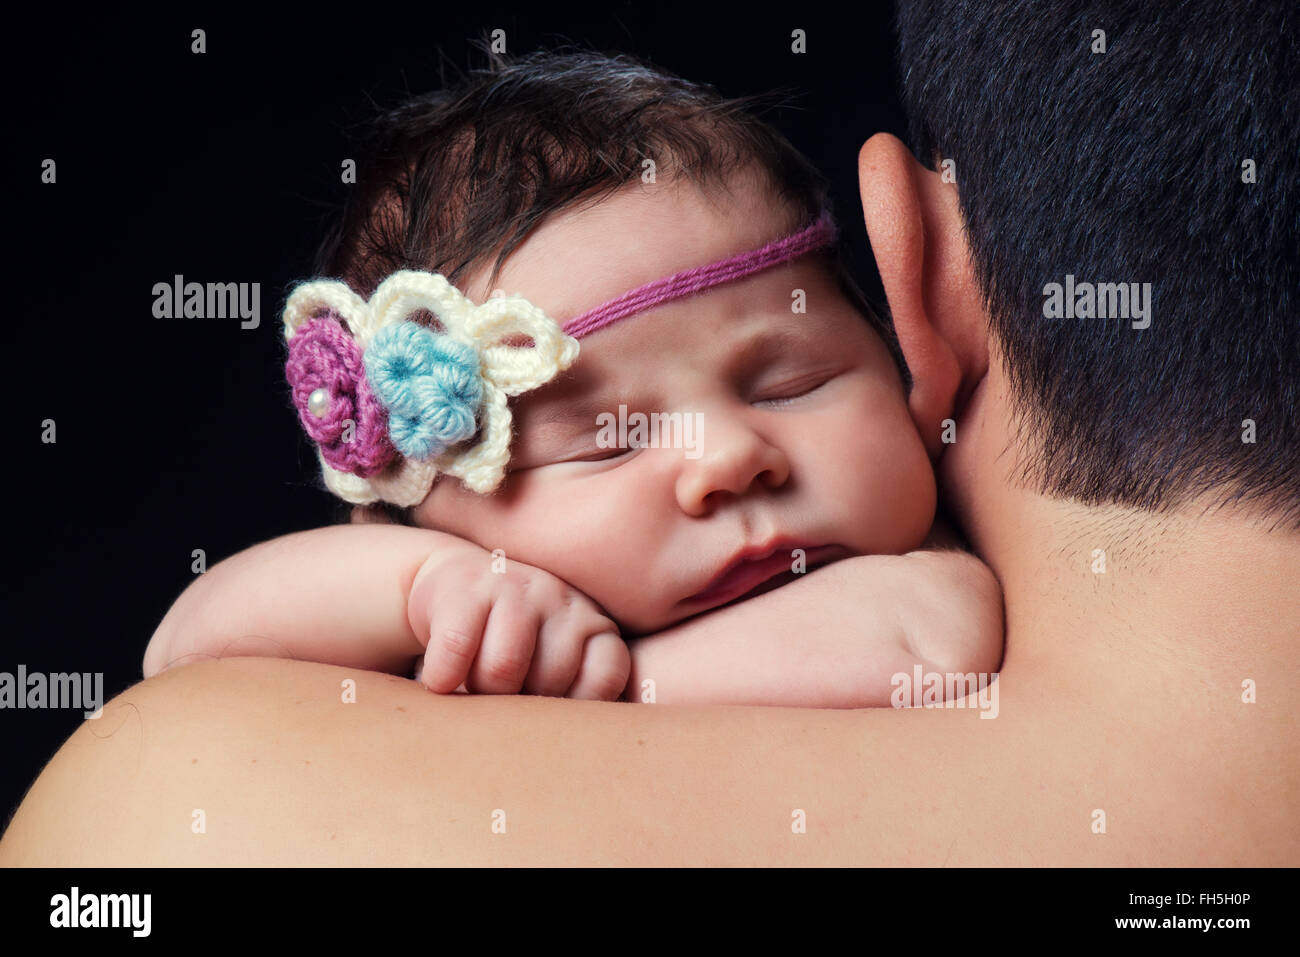 Cute newborn baby girl with knitted headband sleeping on dads shoulder studio black background